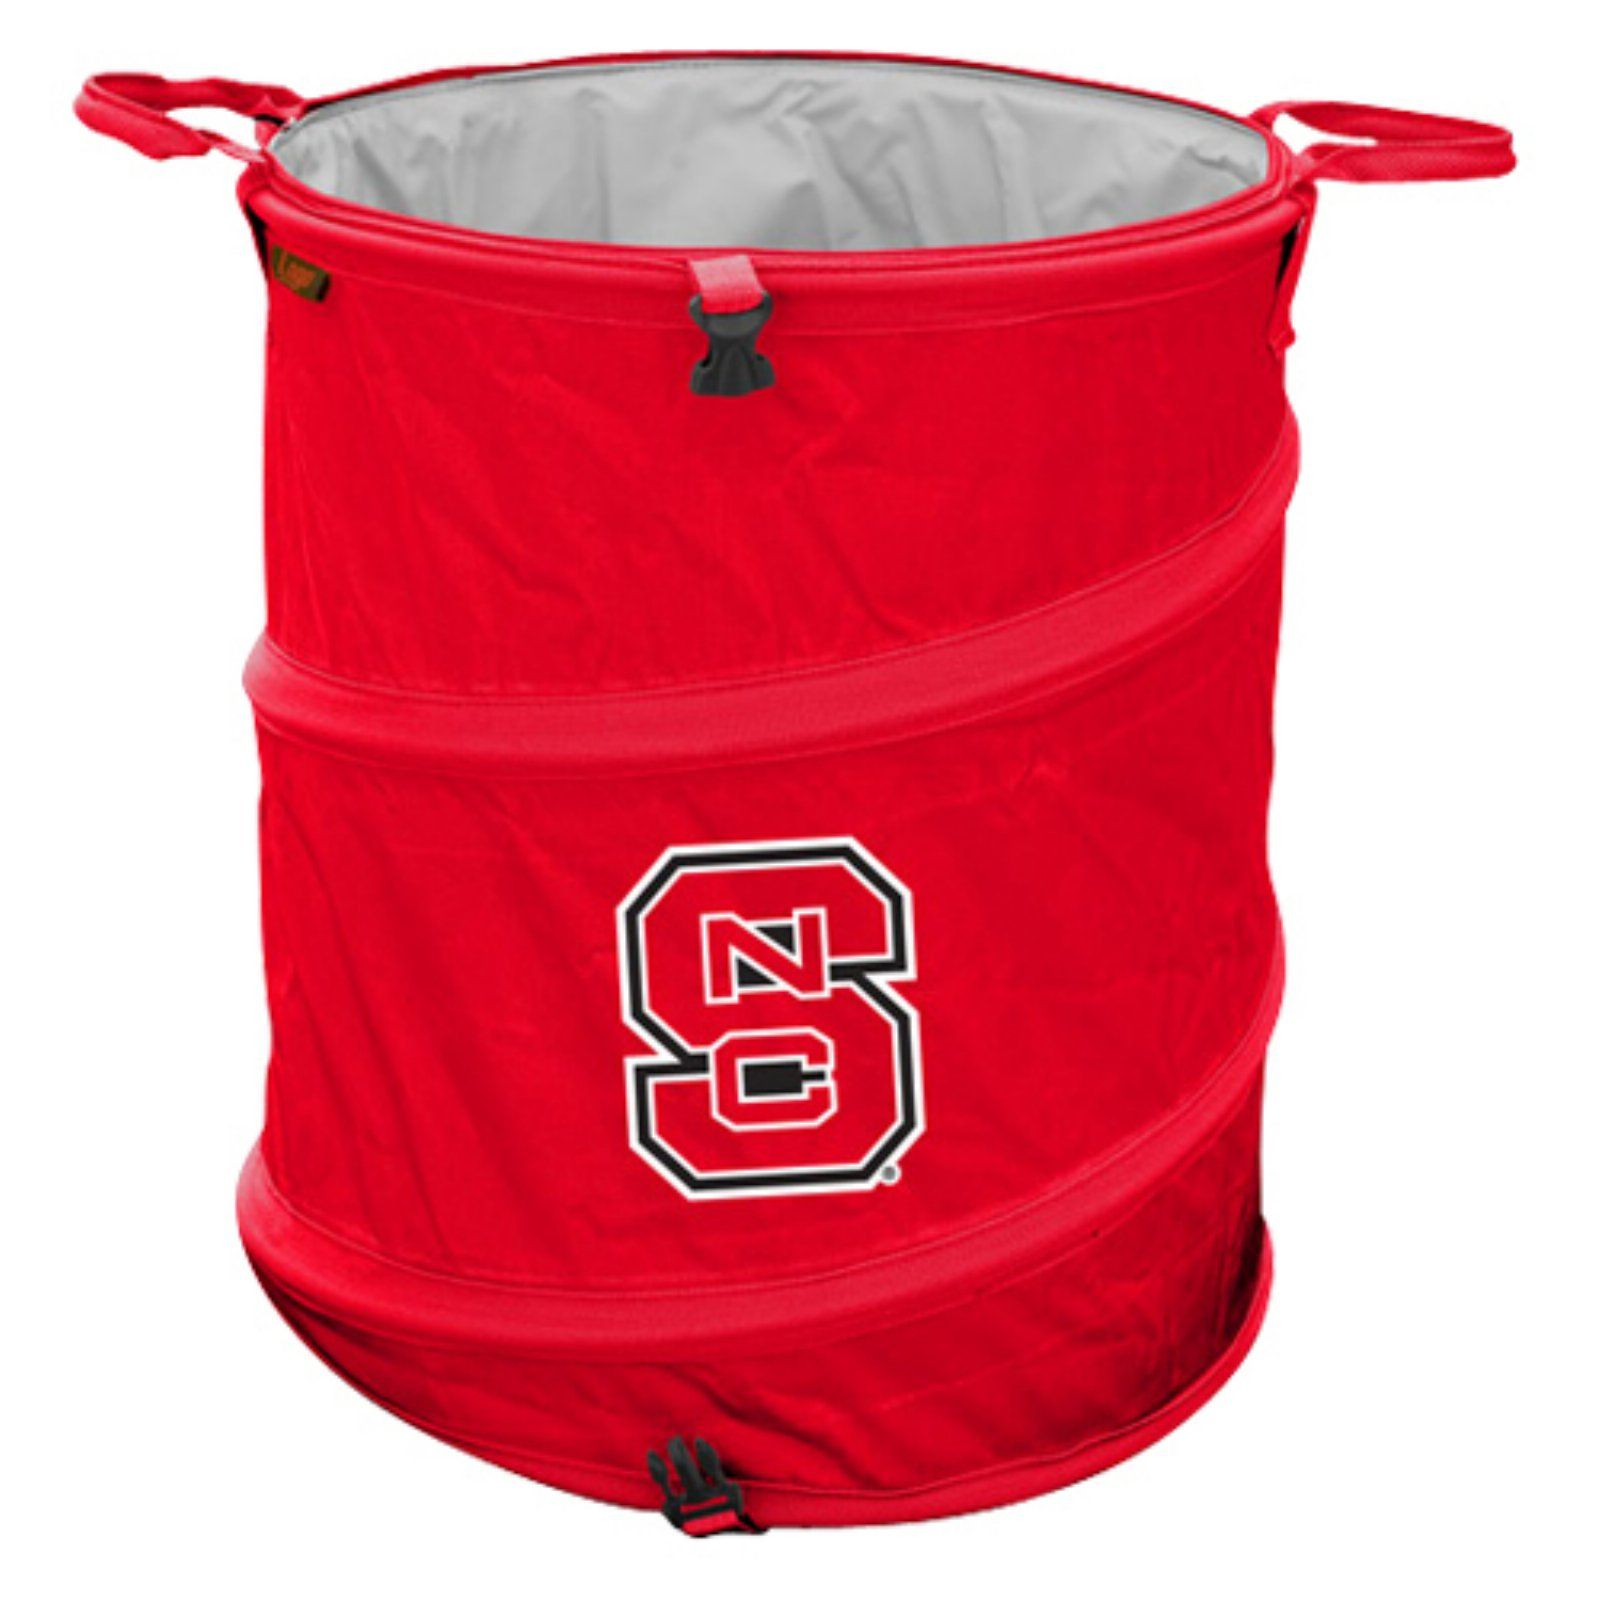 Logo Chair Ncaa College Pop Up Trash Can Logo Branding Coolers